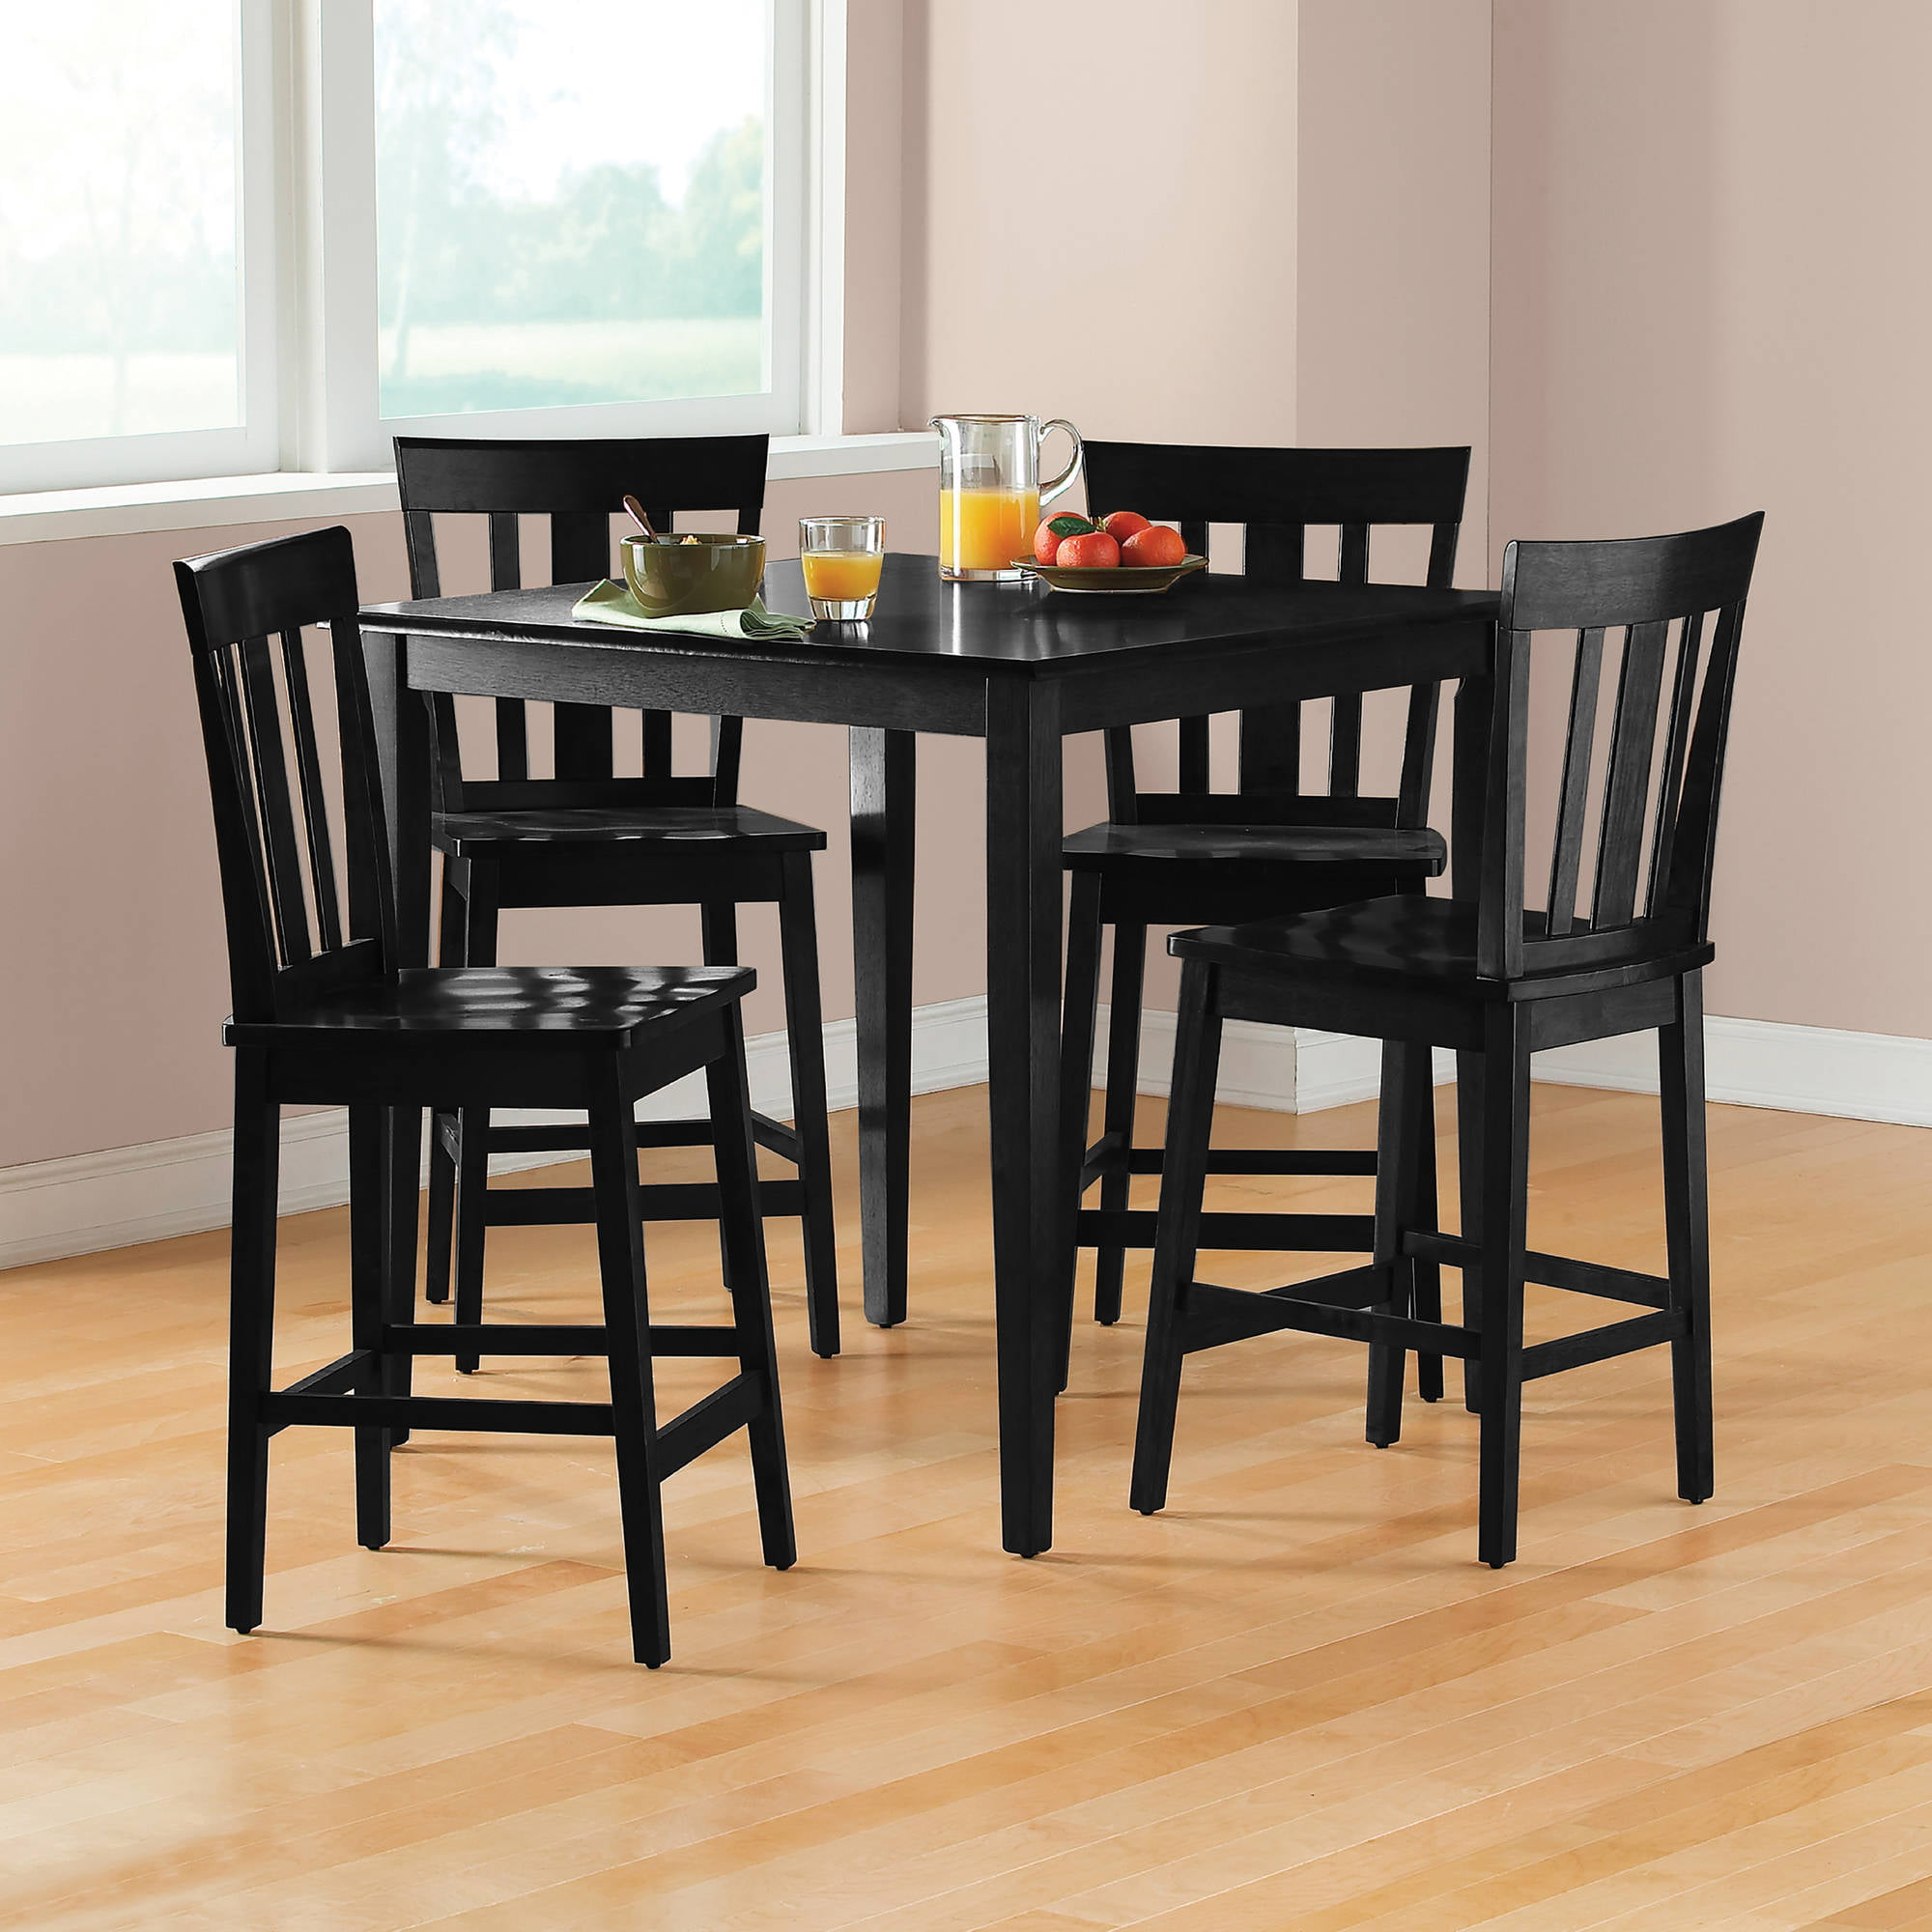 Mainstays 5 Piece Counter Height Dining Set  Black   Walmart.com